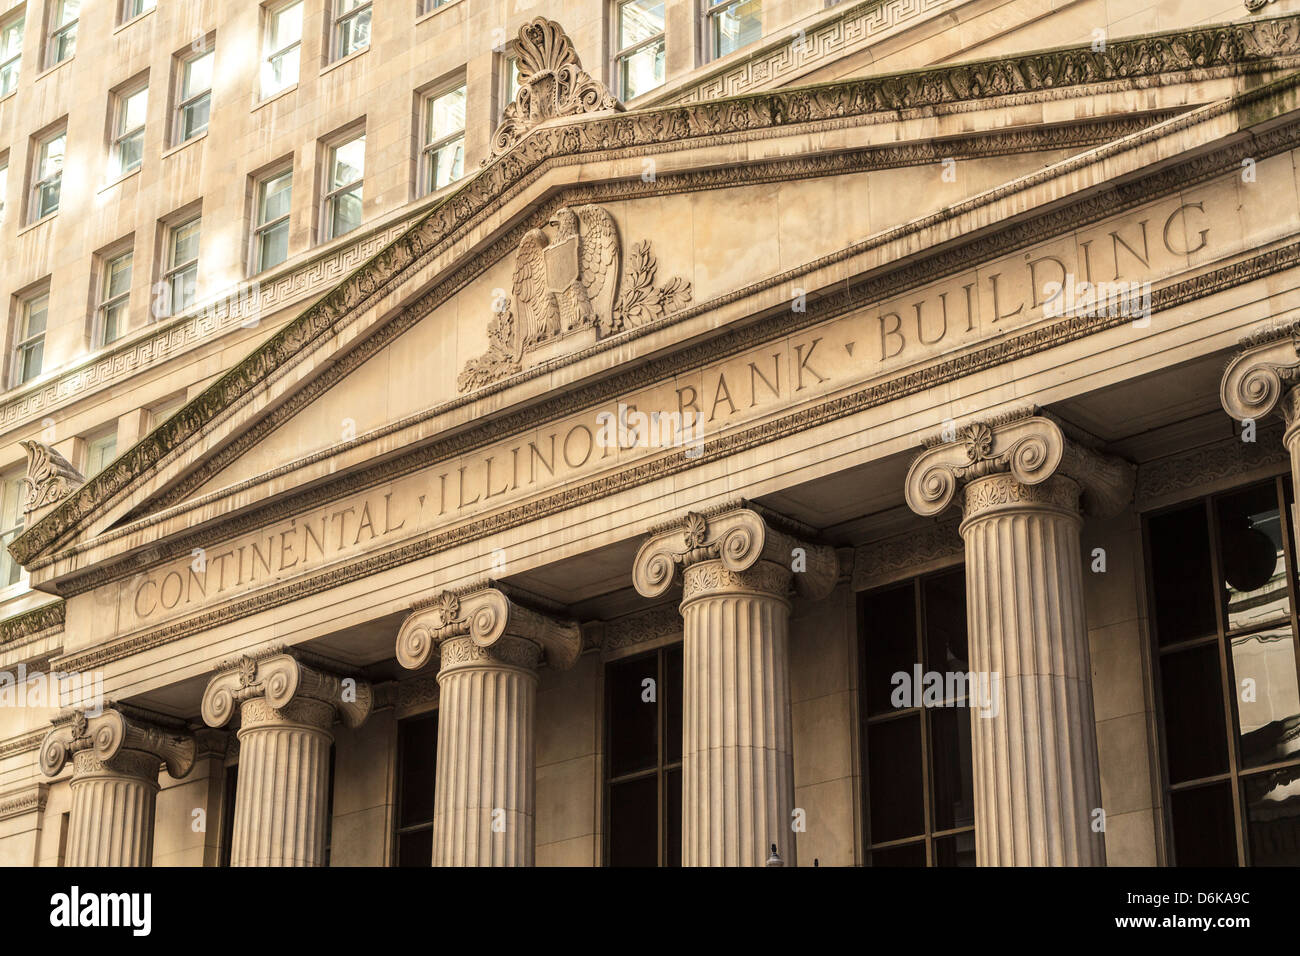 Classical architecture in the financial district, Chicago, Illinois, United States of America, North America - Stock Image